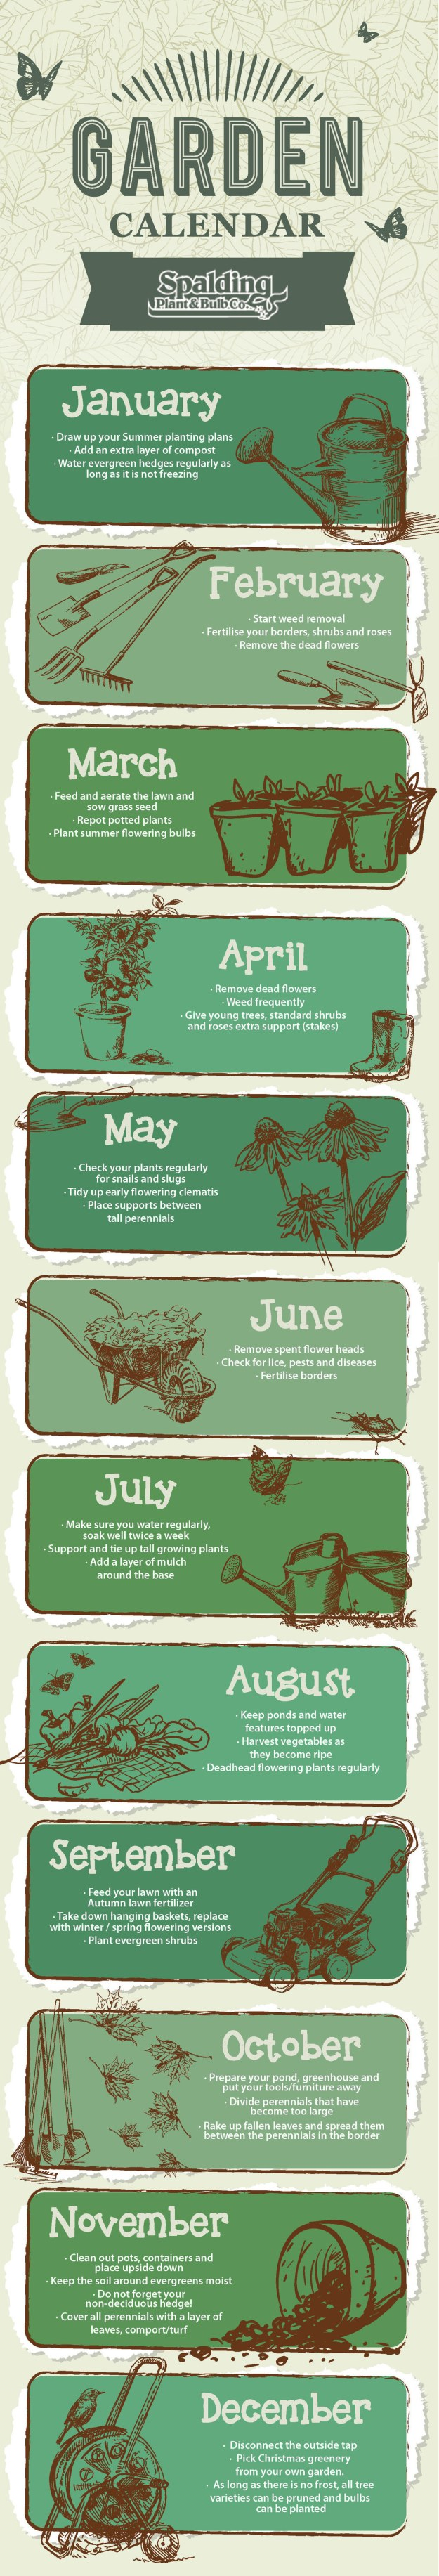 There's always something that needs to be done in a garden: Here's a month-by-month guide to what you should be doing.